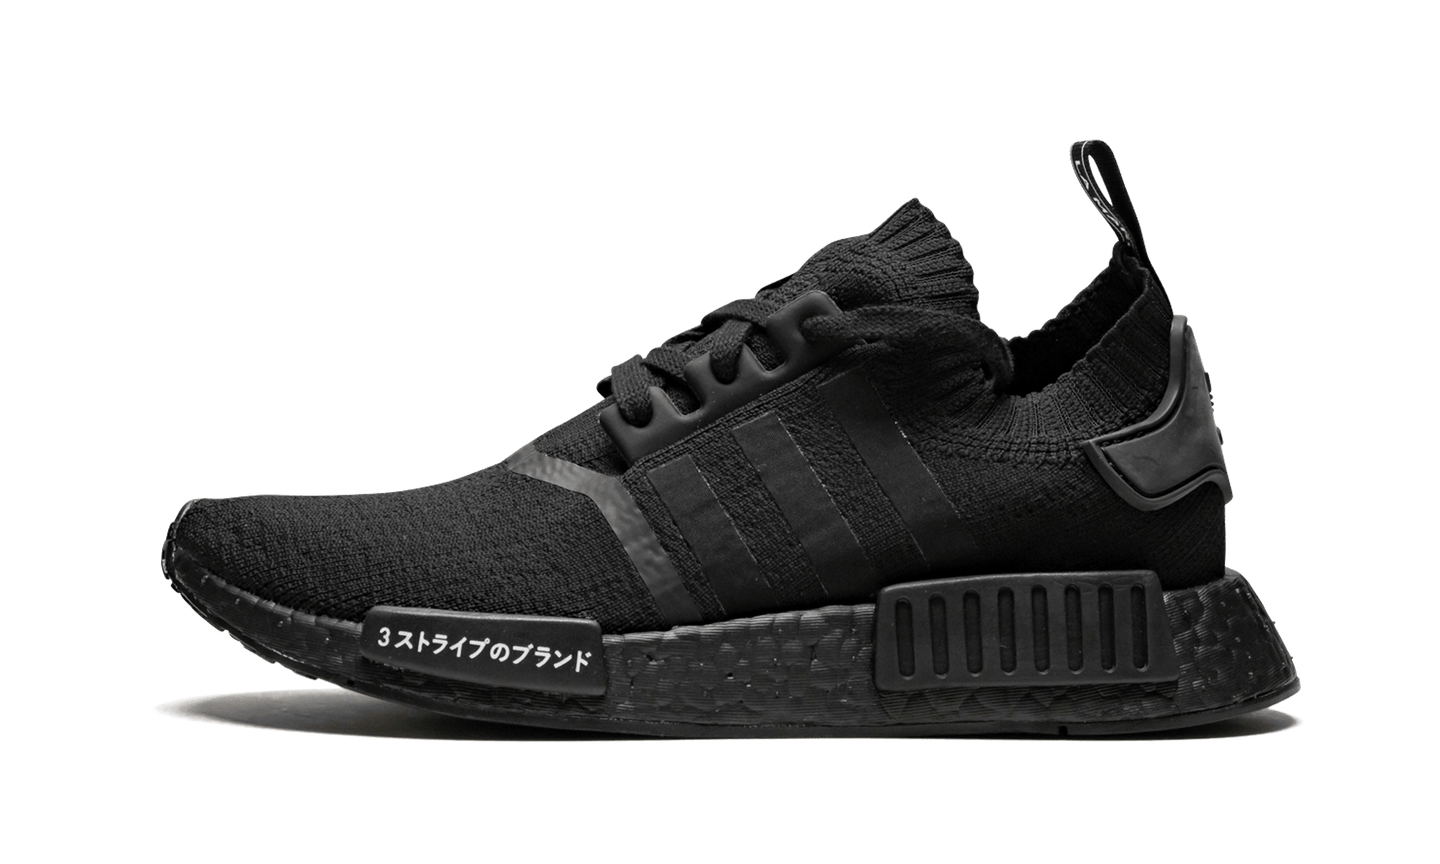 Adidas NMD R1 Japan Triple Black - Street Peek